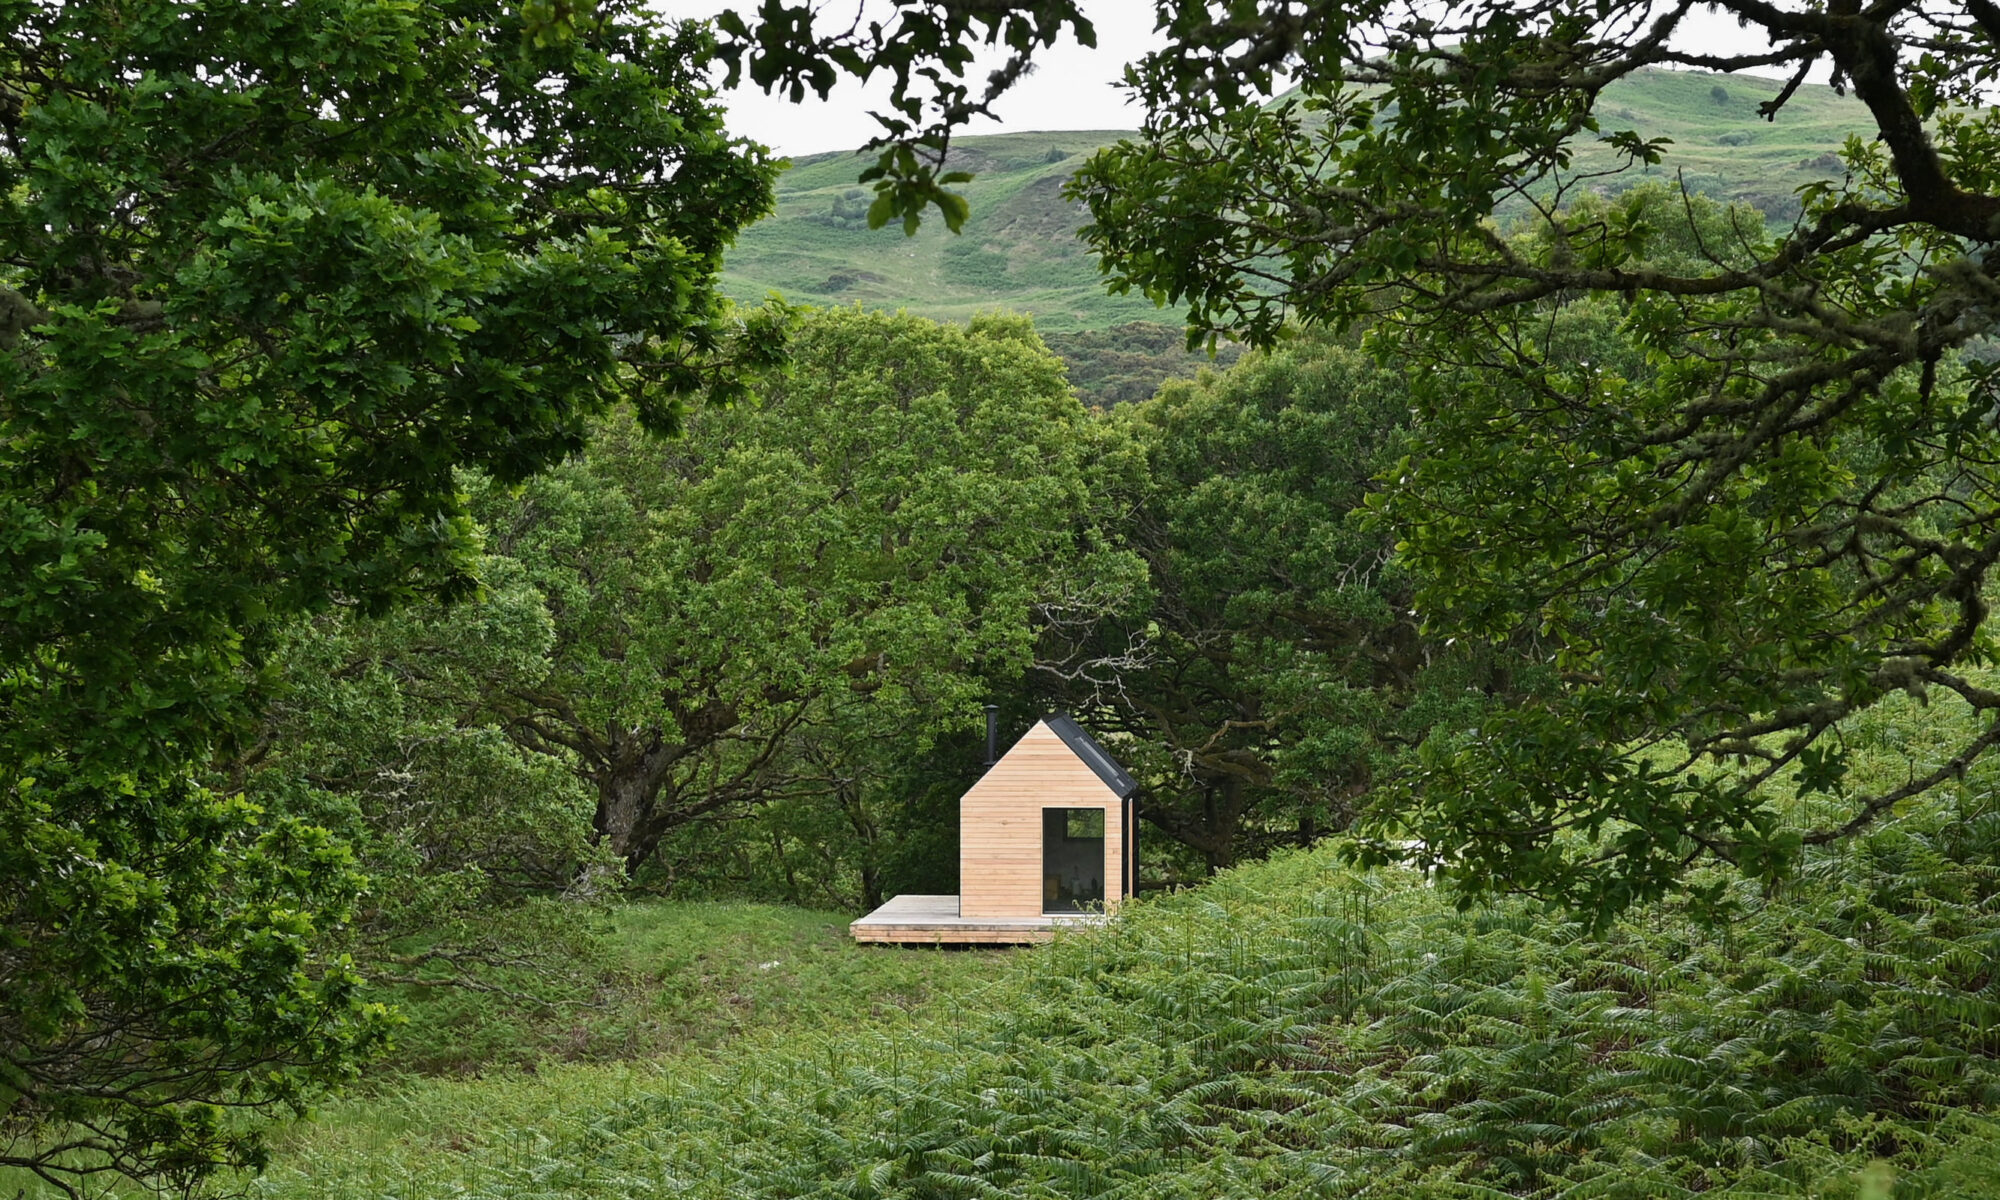 Artist Bothy in the landscape